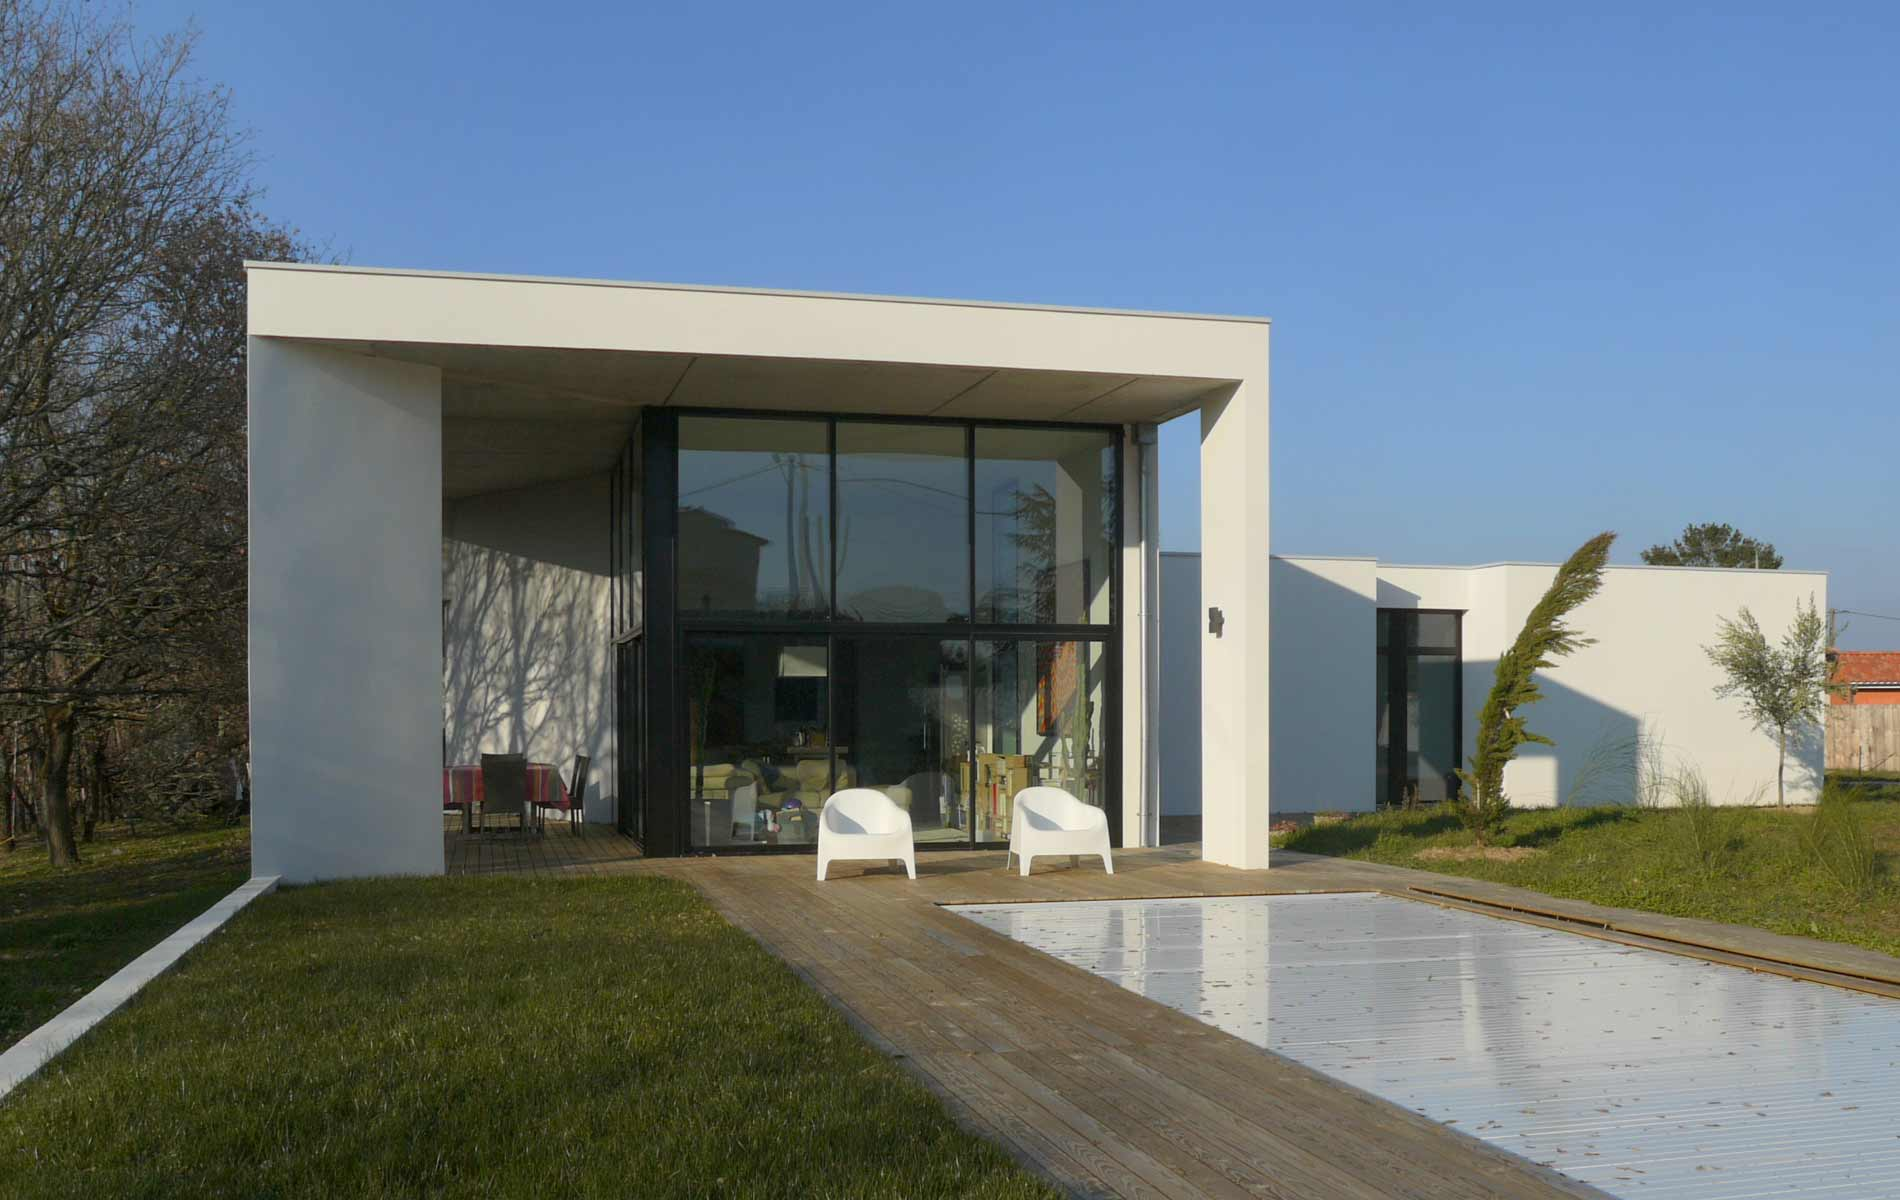 Architecte launaguet architecture contemporaine toulouse - Architecte guadeloupe maison ...